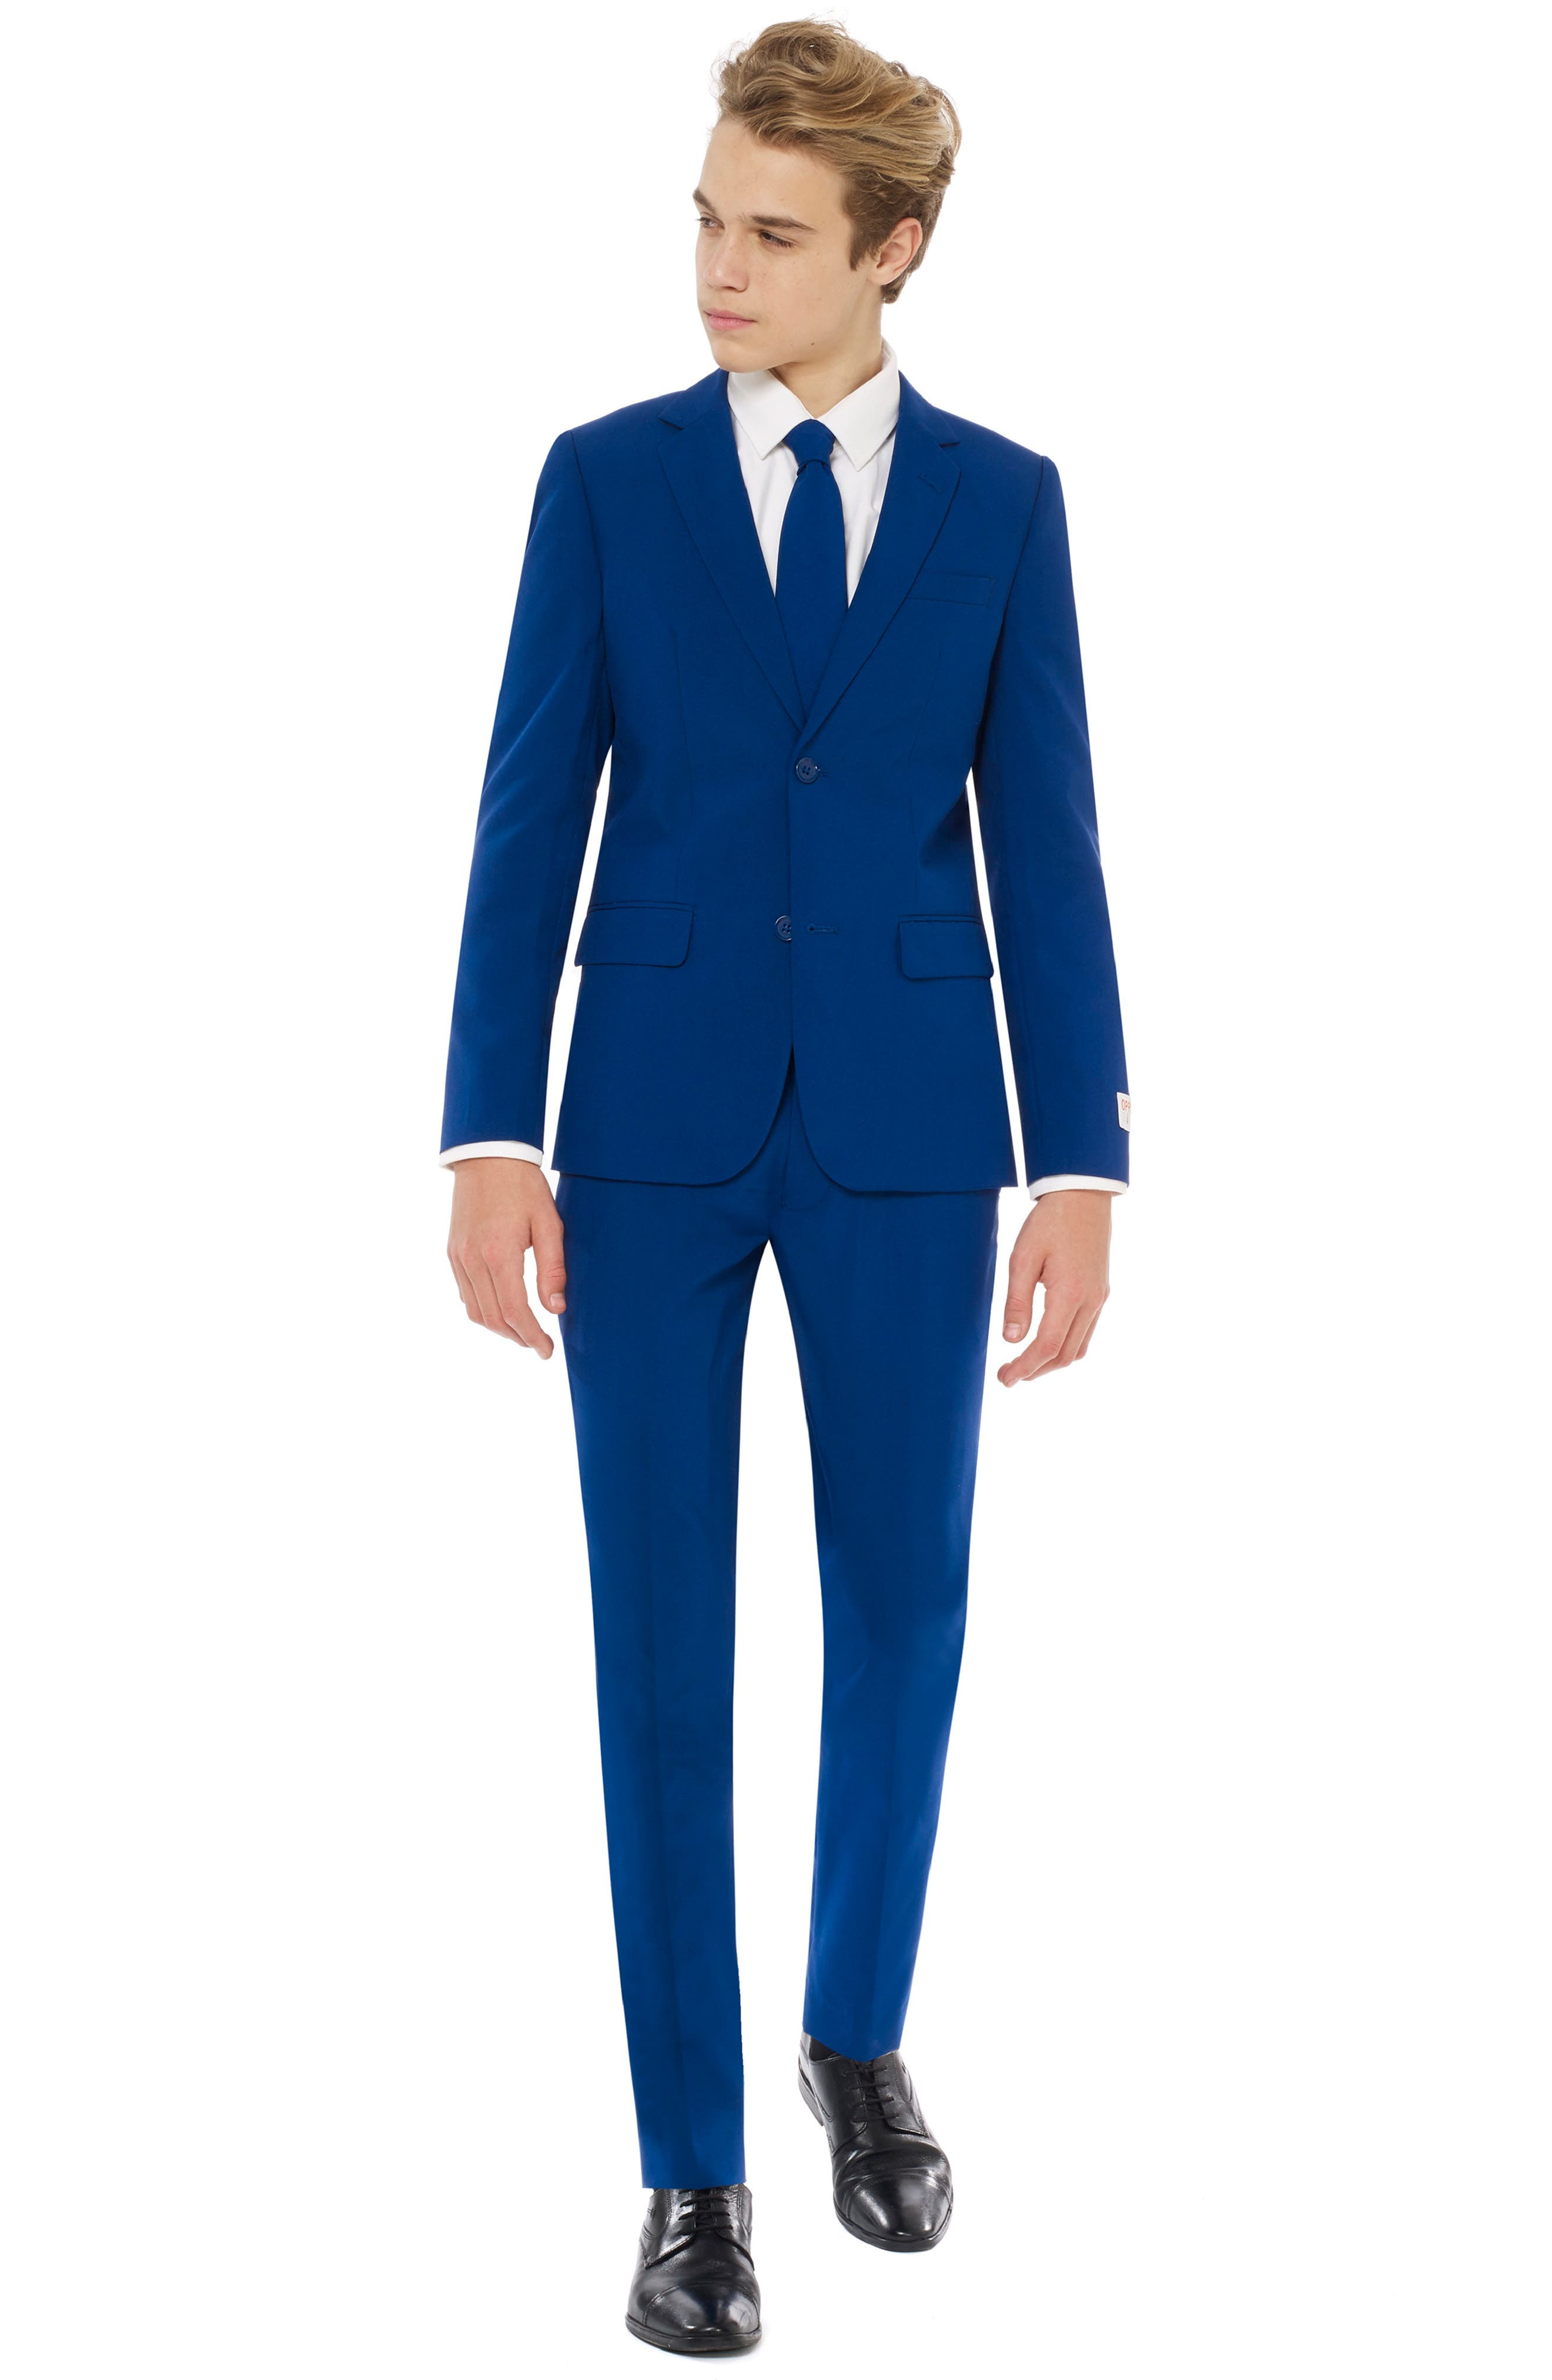 Navy Royale Two-Piece Suit with Tie,                             Main thumbnail 1, color,                             BLUE